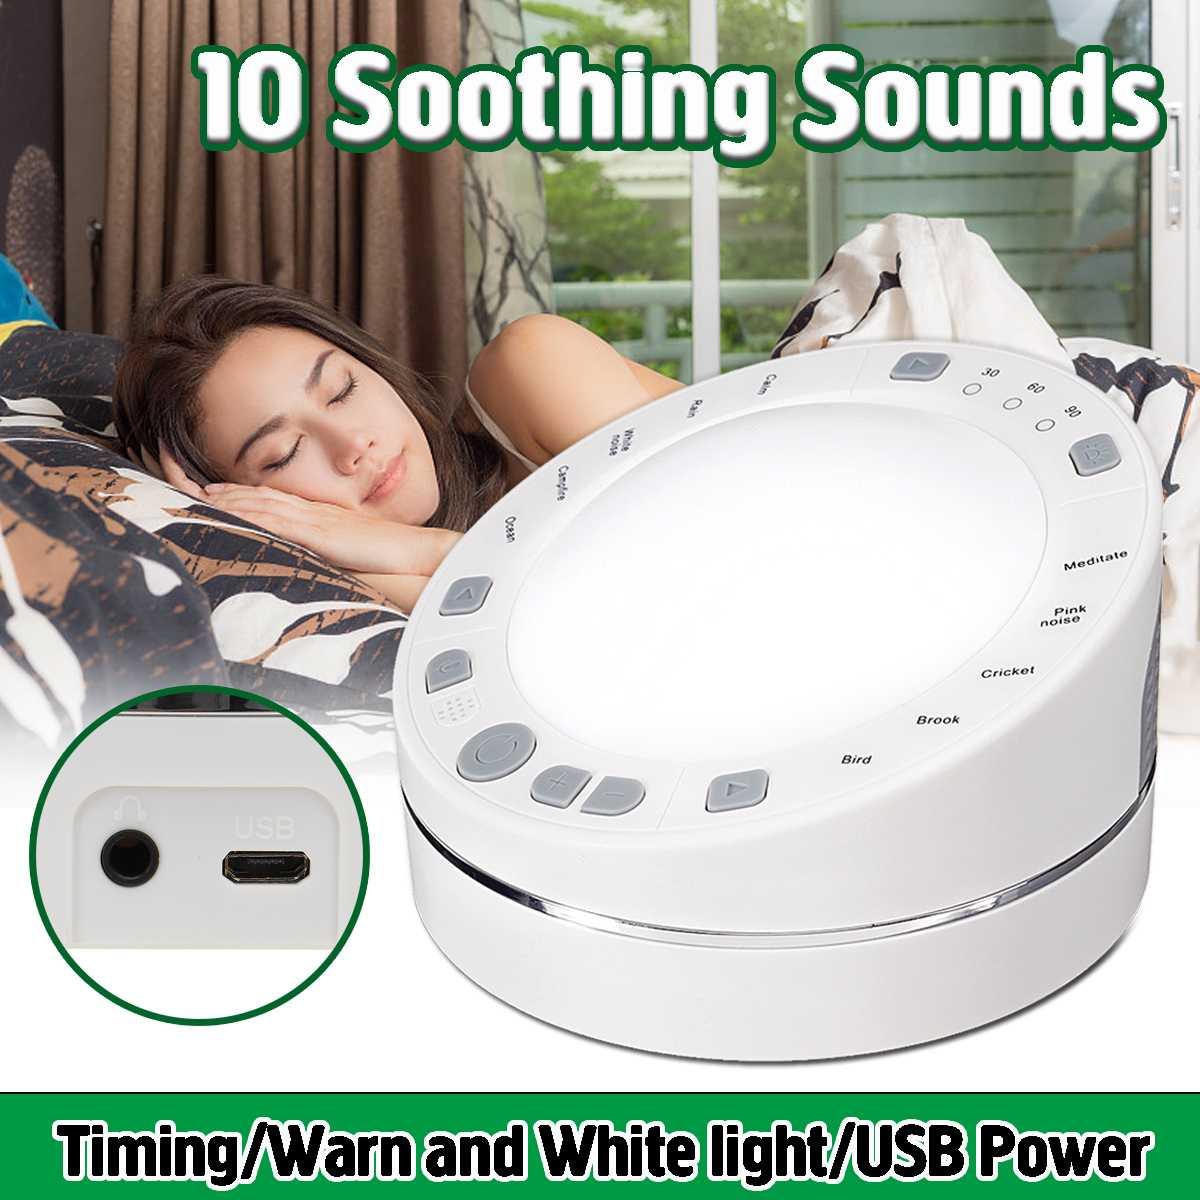 Sleep Sound Therapy Sound Machine Night Light USB Battery Powered White Noise Machine  For Sleeping Relaxation Sleep Instrument